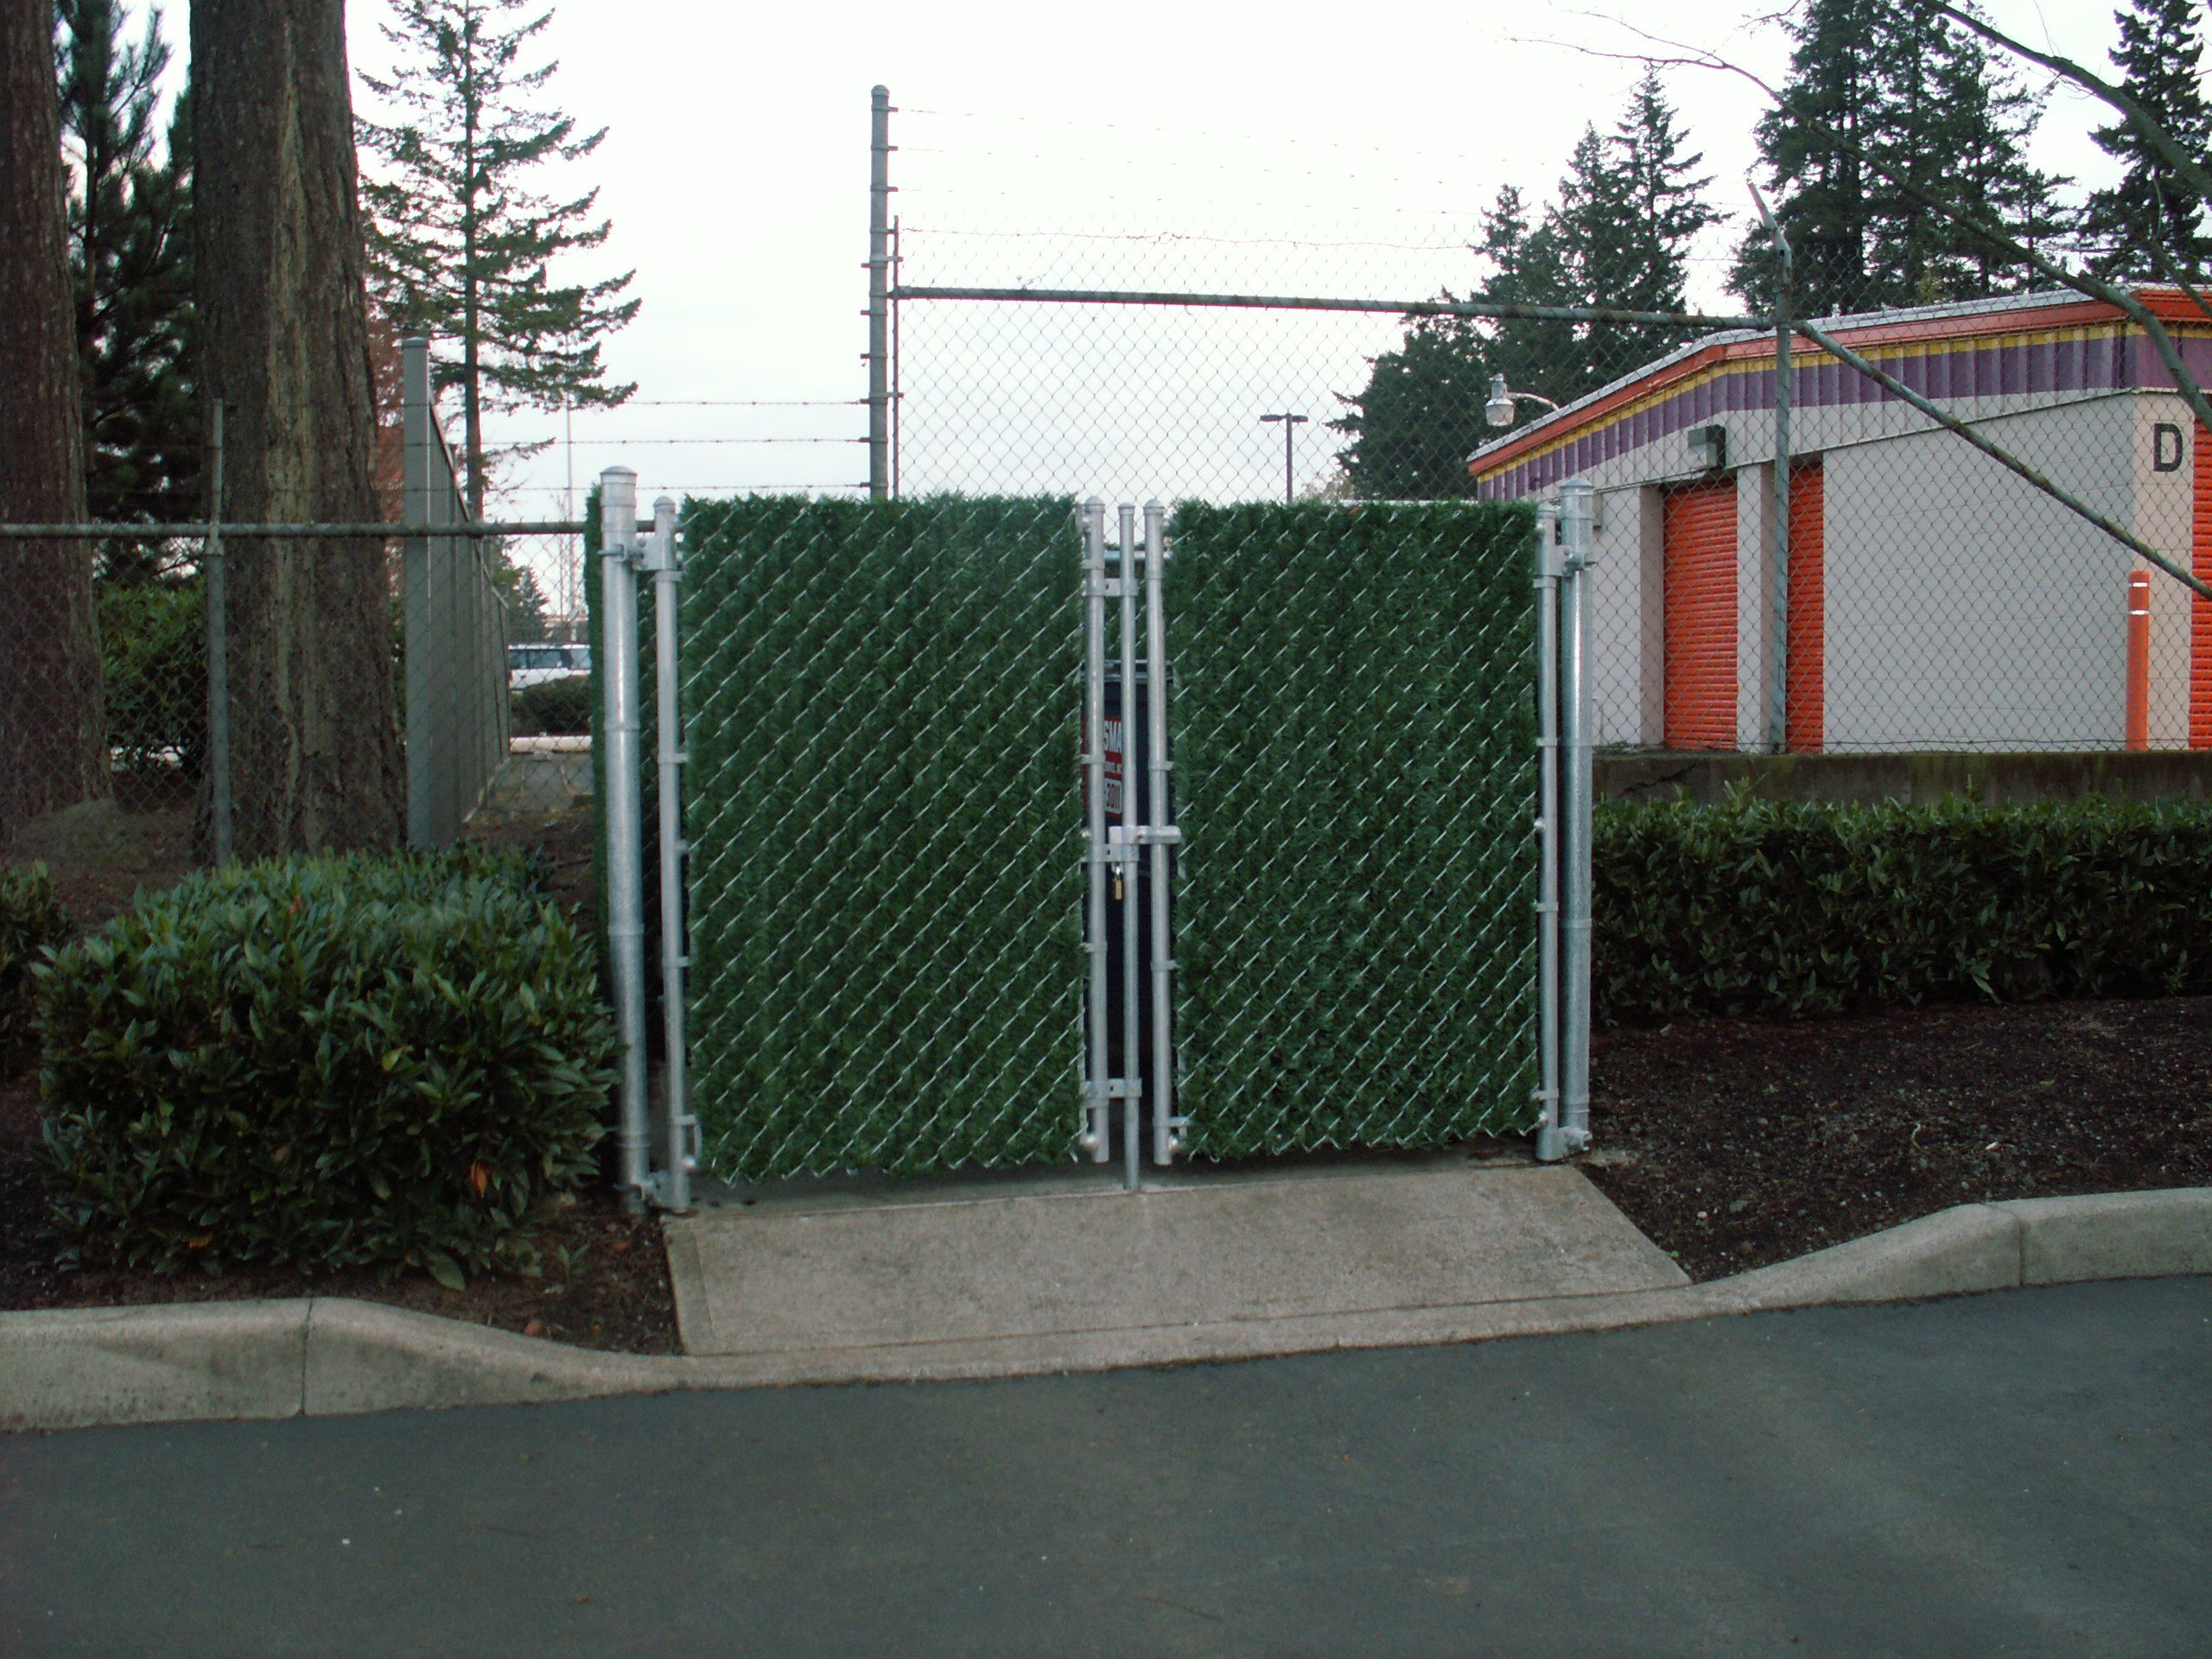 Looking For A Good Way To Hide A Trash Enclosure Try Our Privacy Hedge Slats Superior Fence Construction 503 760 7725 Fence Construction Privacy Hedge Fence